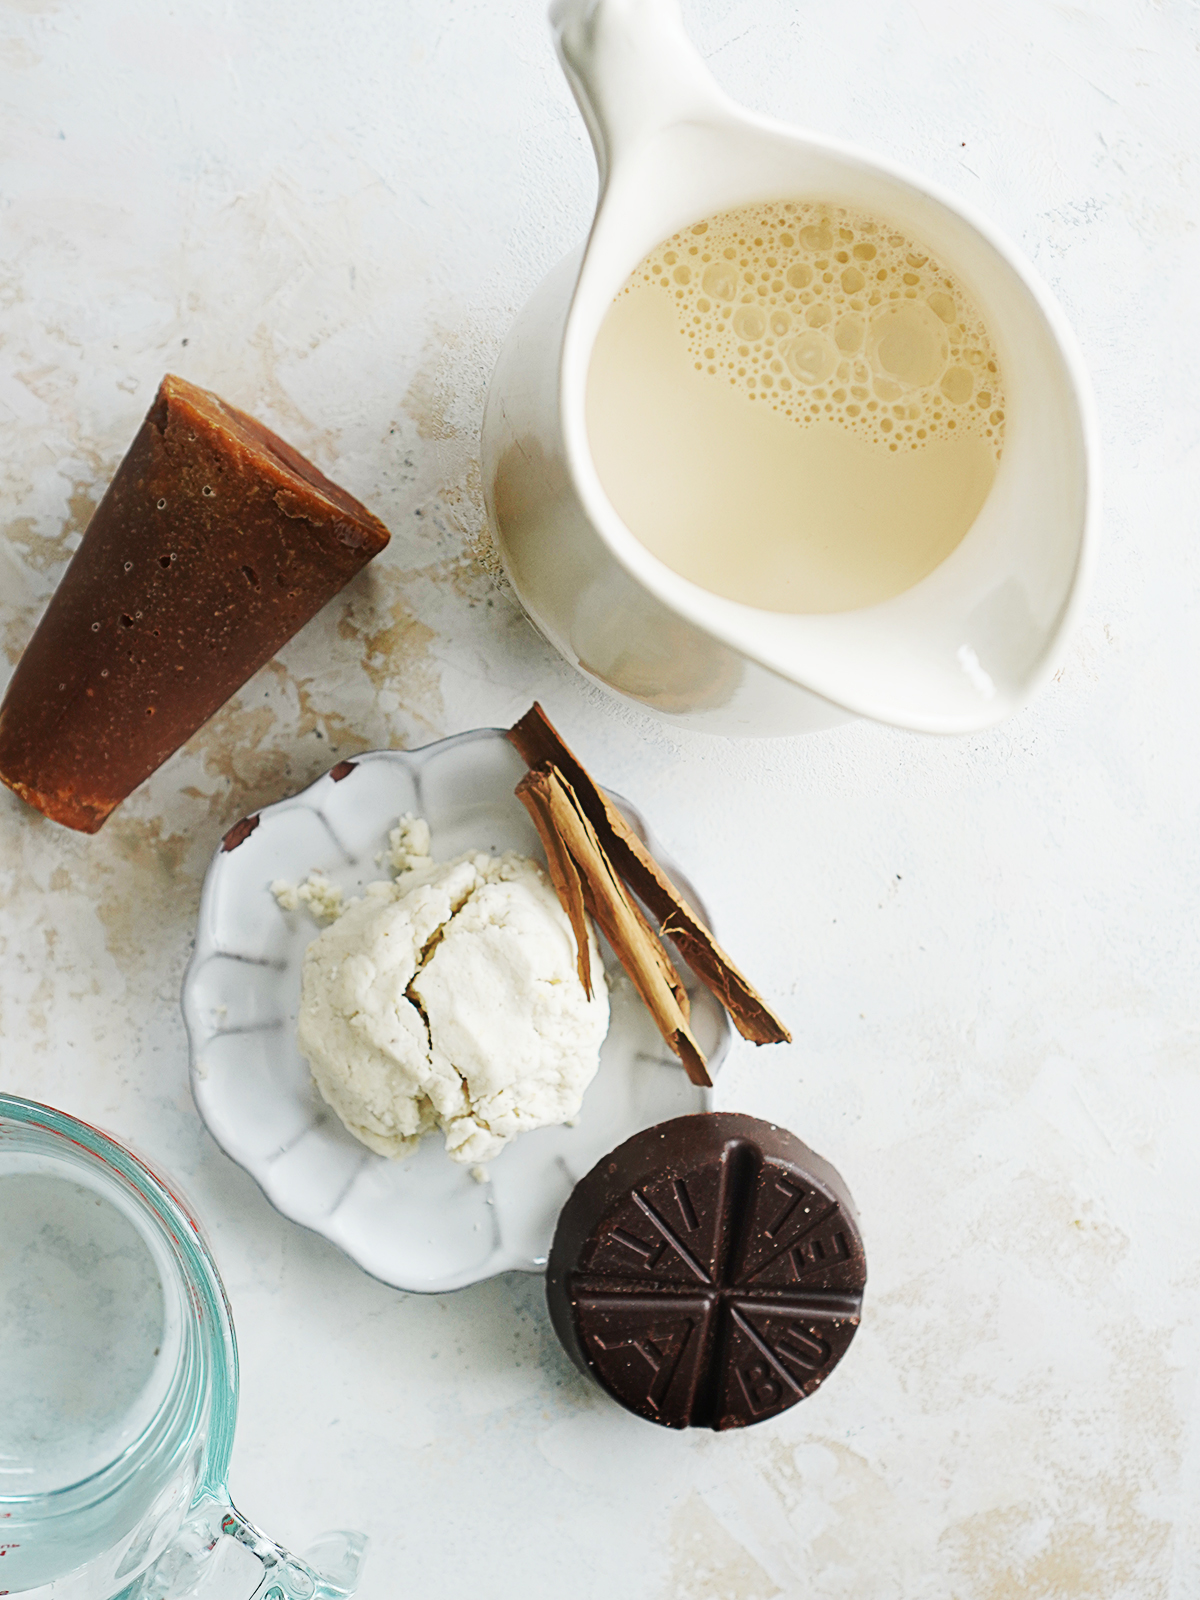 Ingredients: milk in a small jar, masa, piloncillo, chocolate in a circle and cinnamon stick